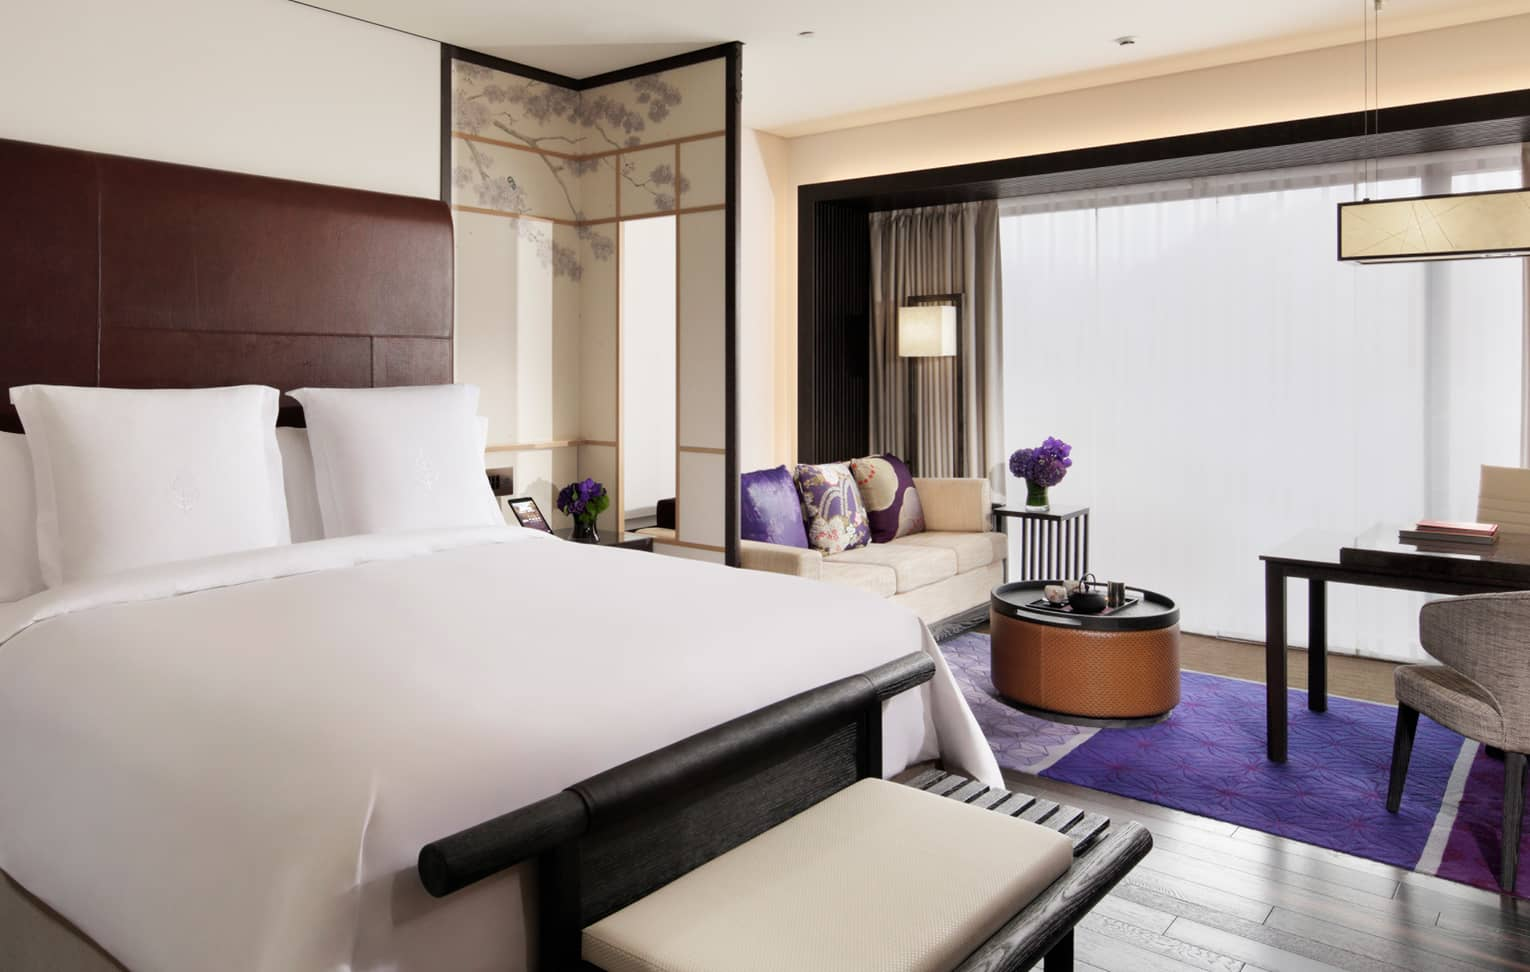 Premier Room with white bed, bench and loveseat, bright purple pillows and rug